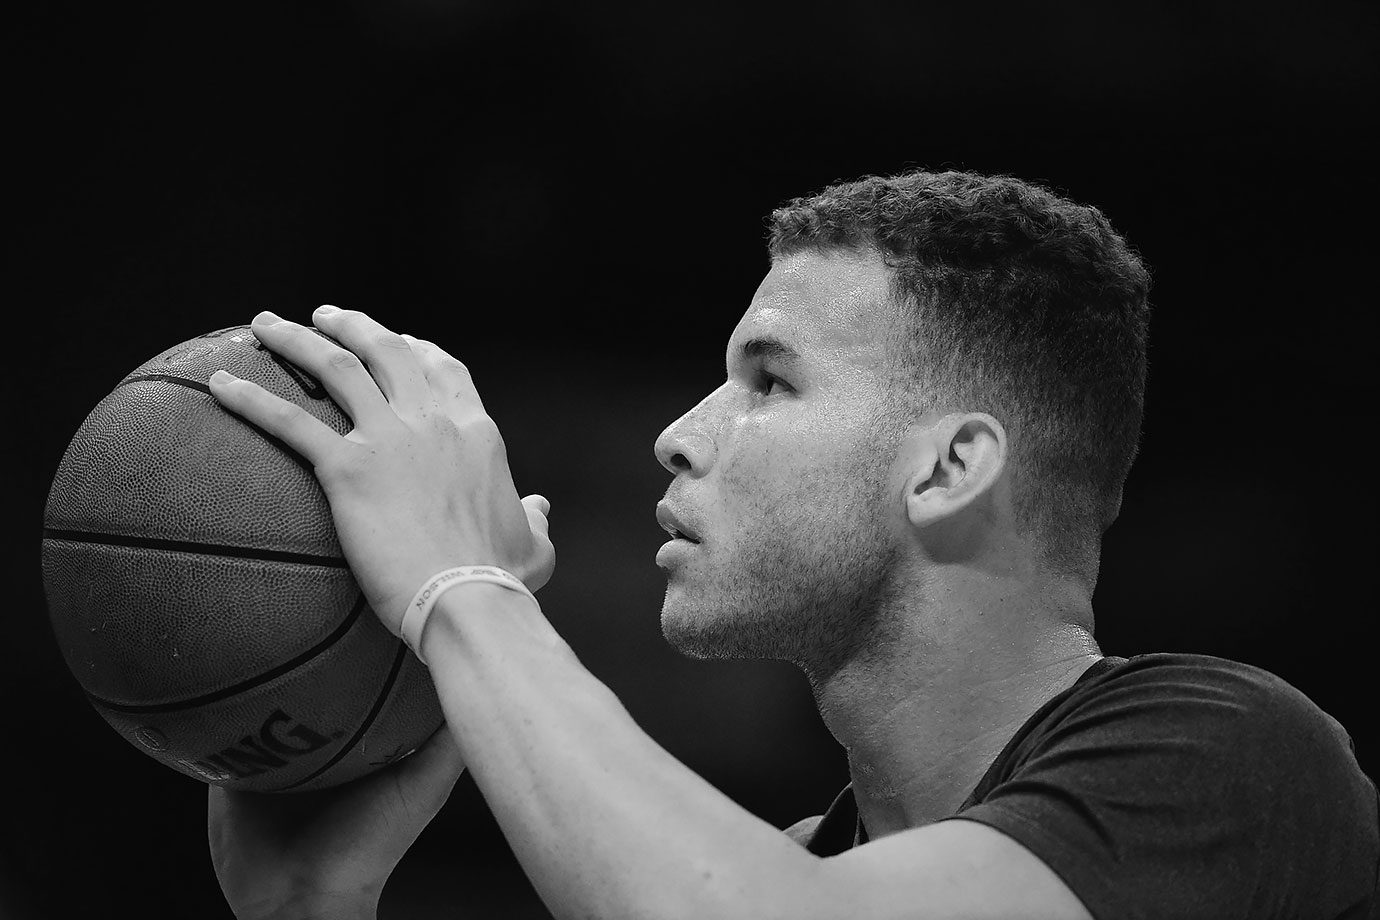 Blake Griffin warms up before Clippers-Spurs playoff game in L.A.